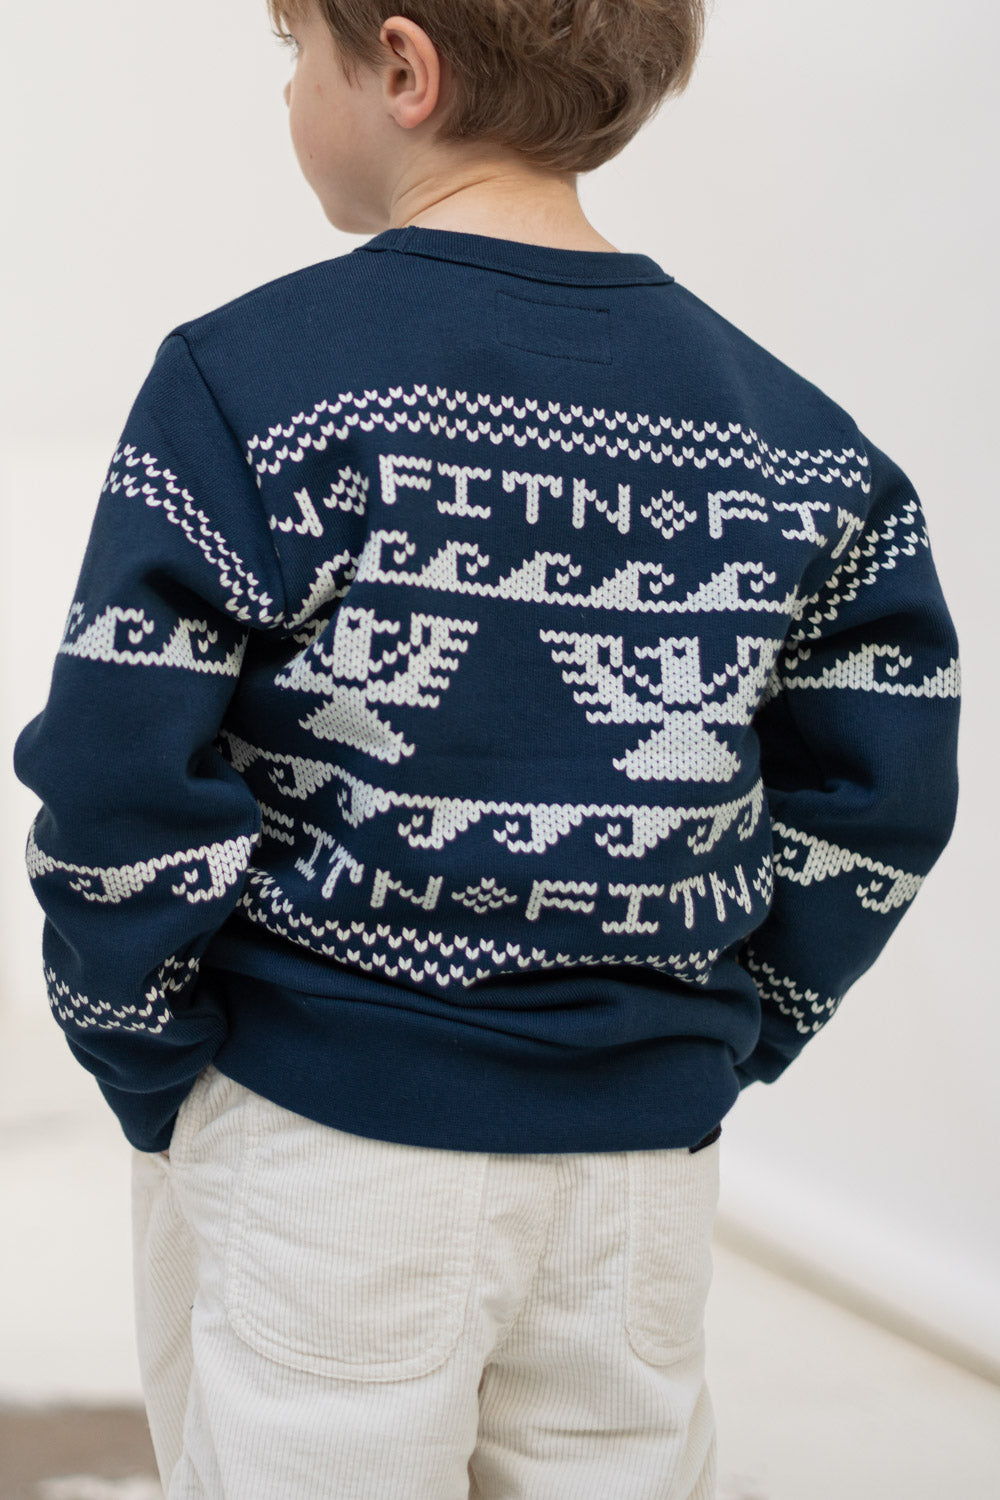 BRIAN Navy Cowichan - Crew Neck Sweater